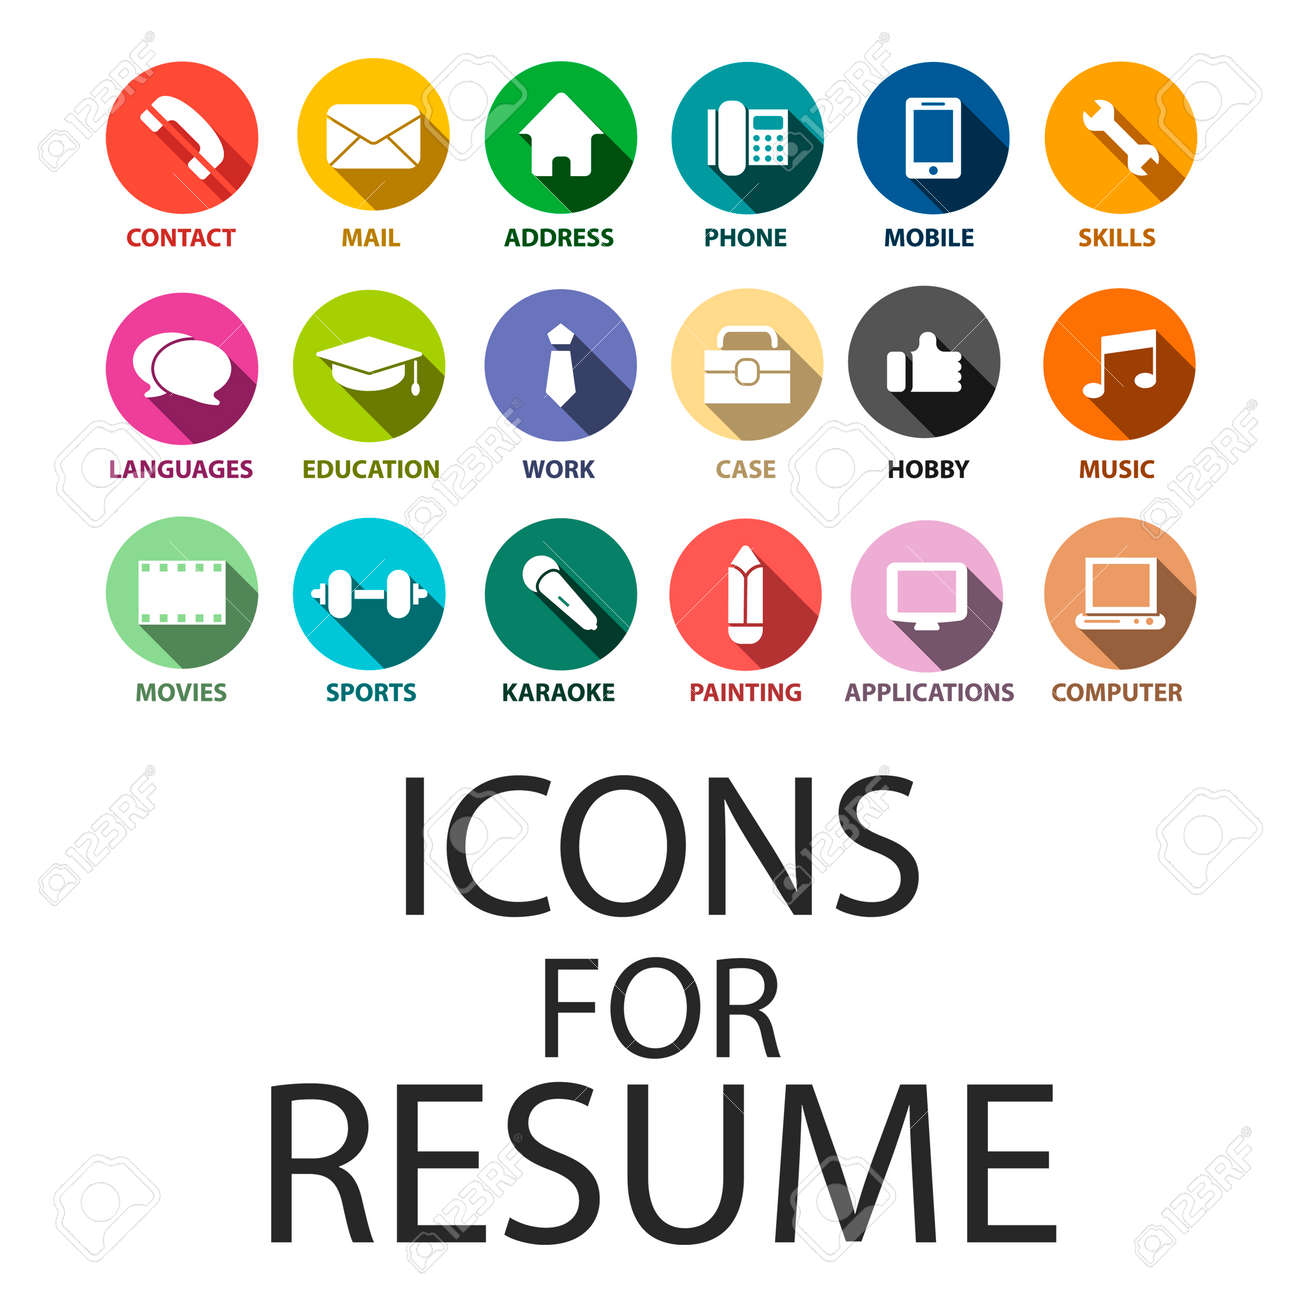 cv icons Icons Set For Your Resume, CV, Job Royalty Free Cliparts, Vectors